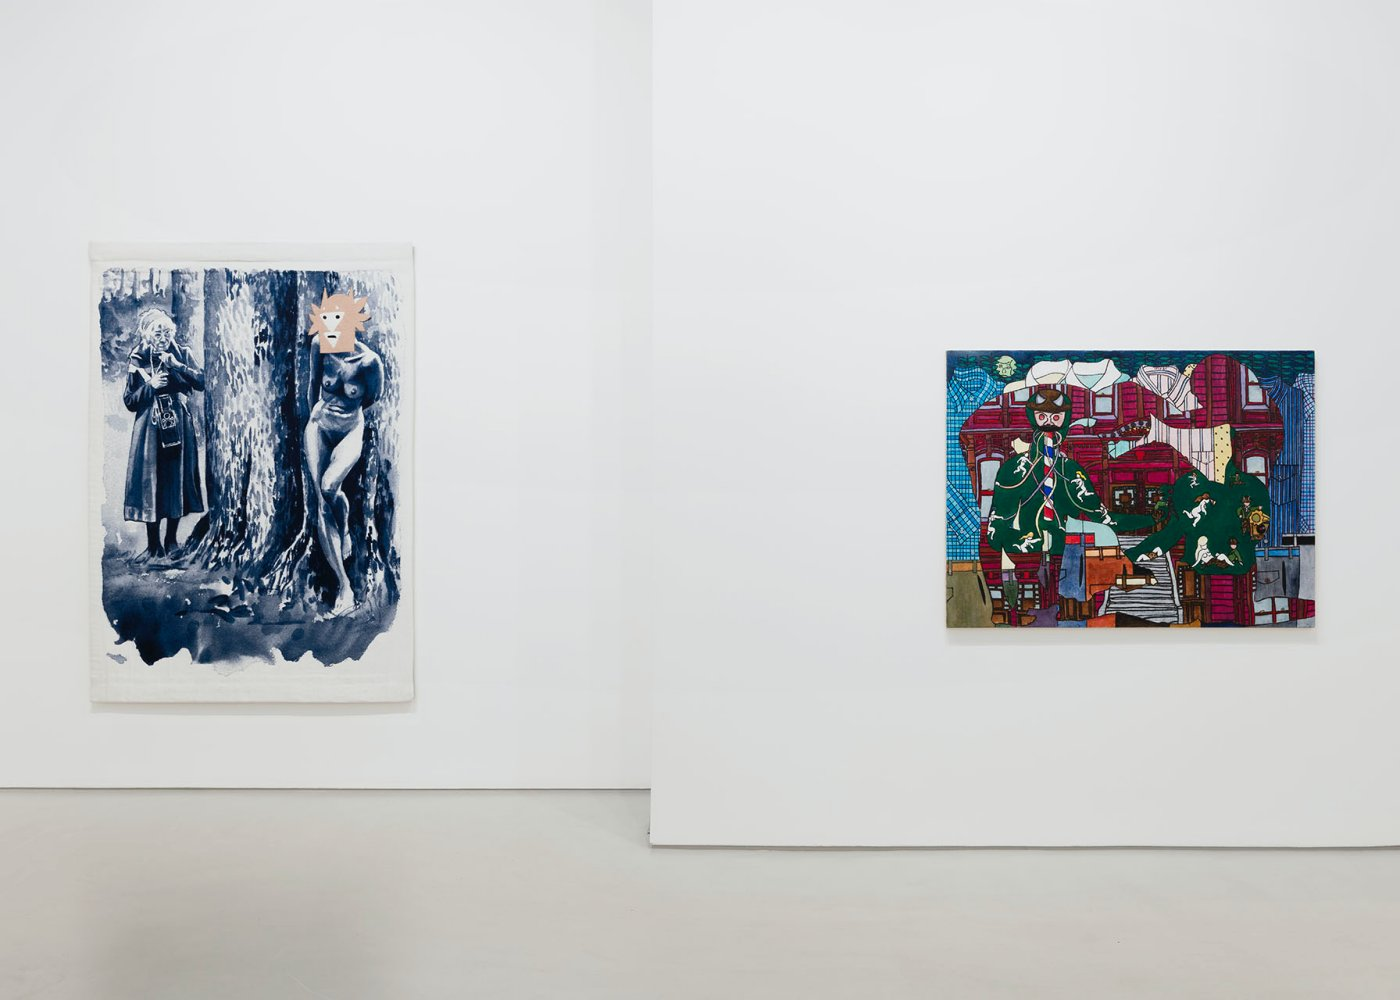 Galerie Max Hetzler FIAC at the gallery 2